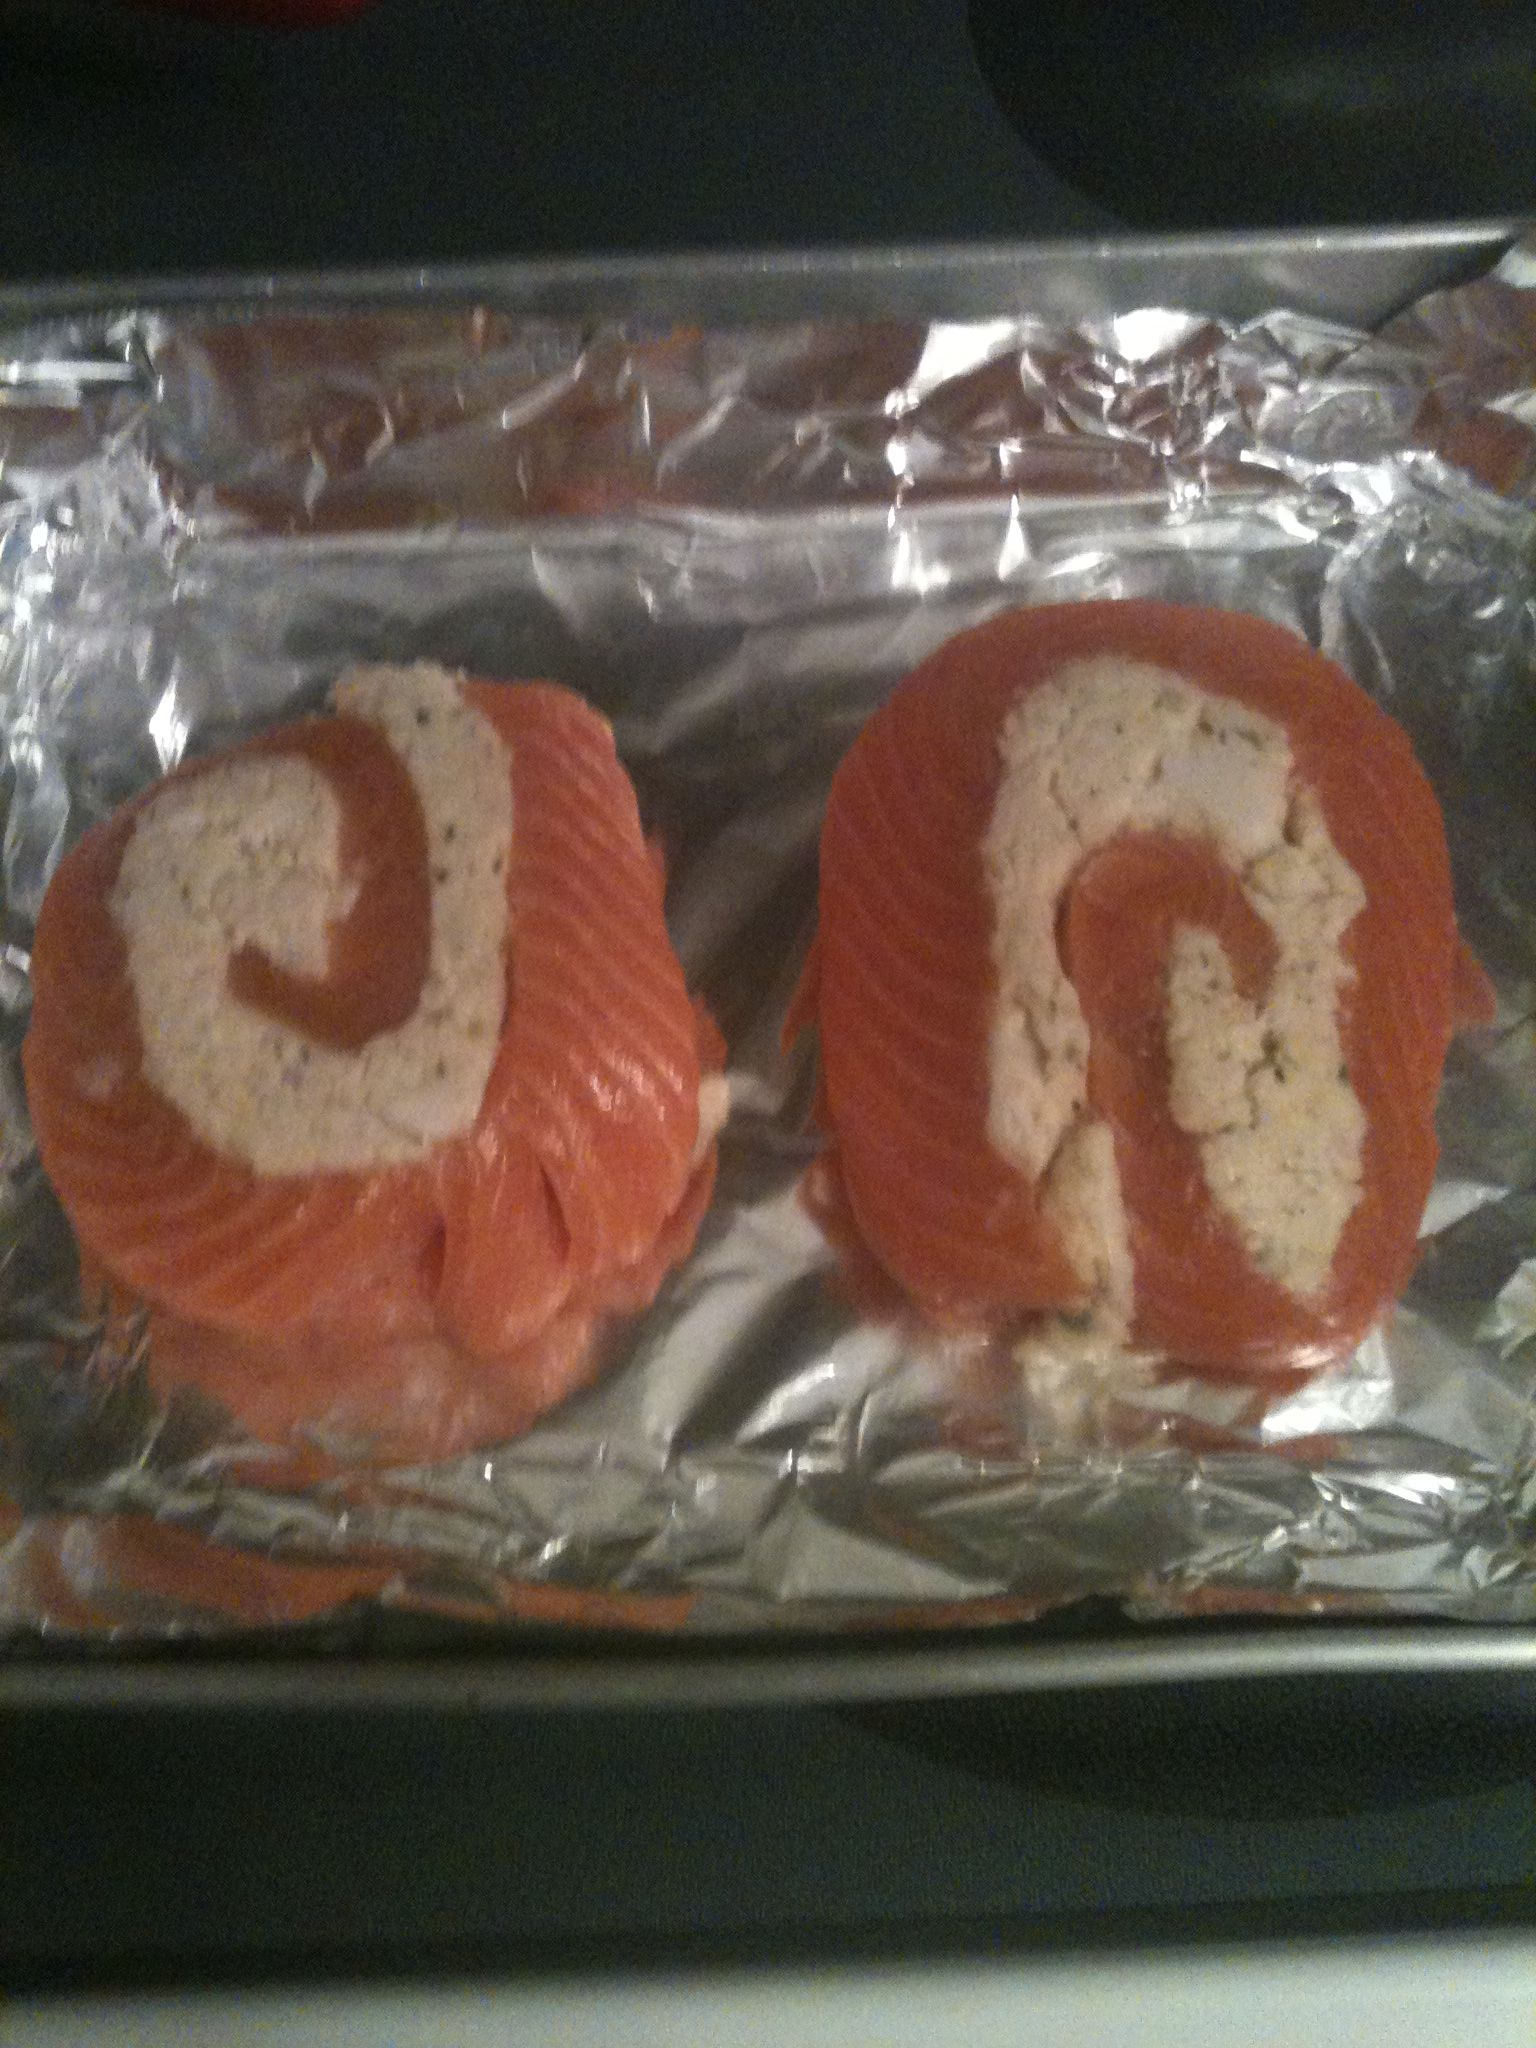 Salmon pinwheel with crab meat stuffing i bought it at publix salmon pinwheel with crab meat stuffing i bought it at publix already made up you preheat oven on 350 then bake for 35 min my mom loved it ccuart Image collections